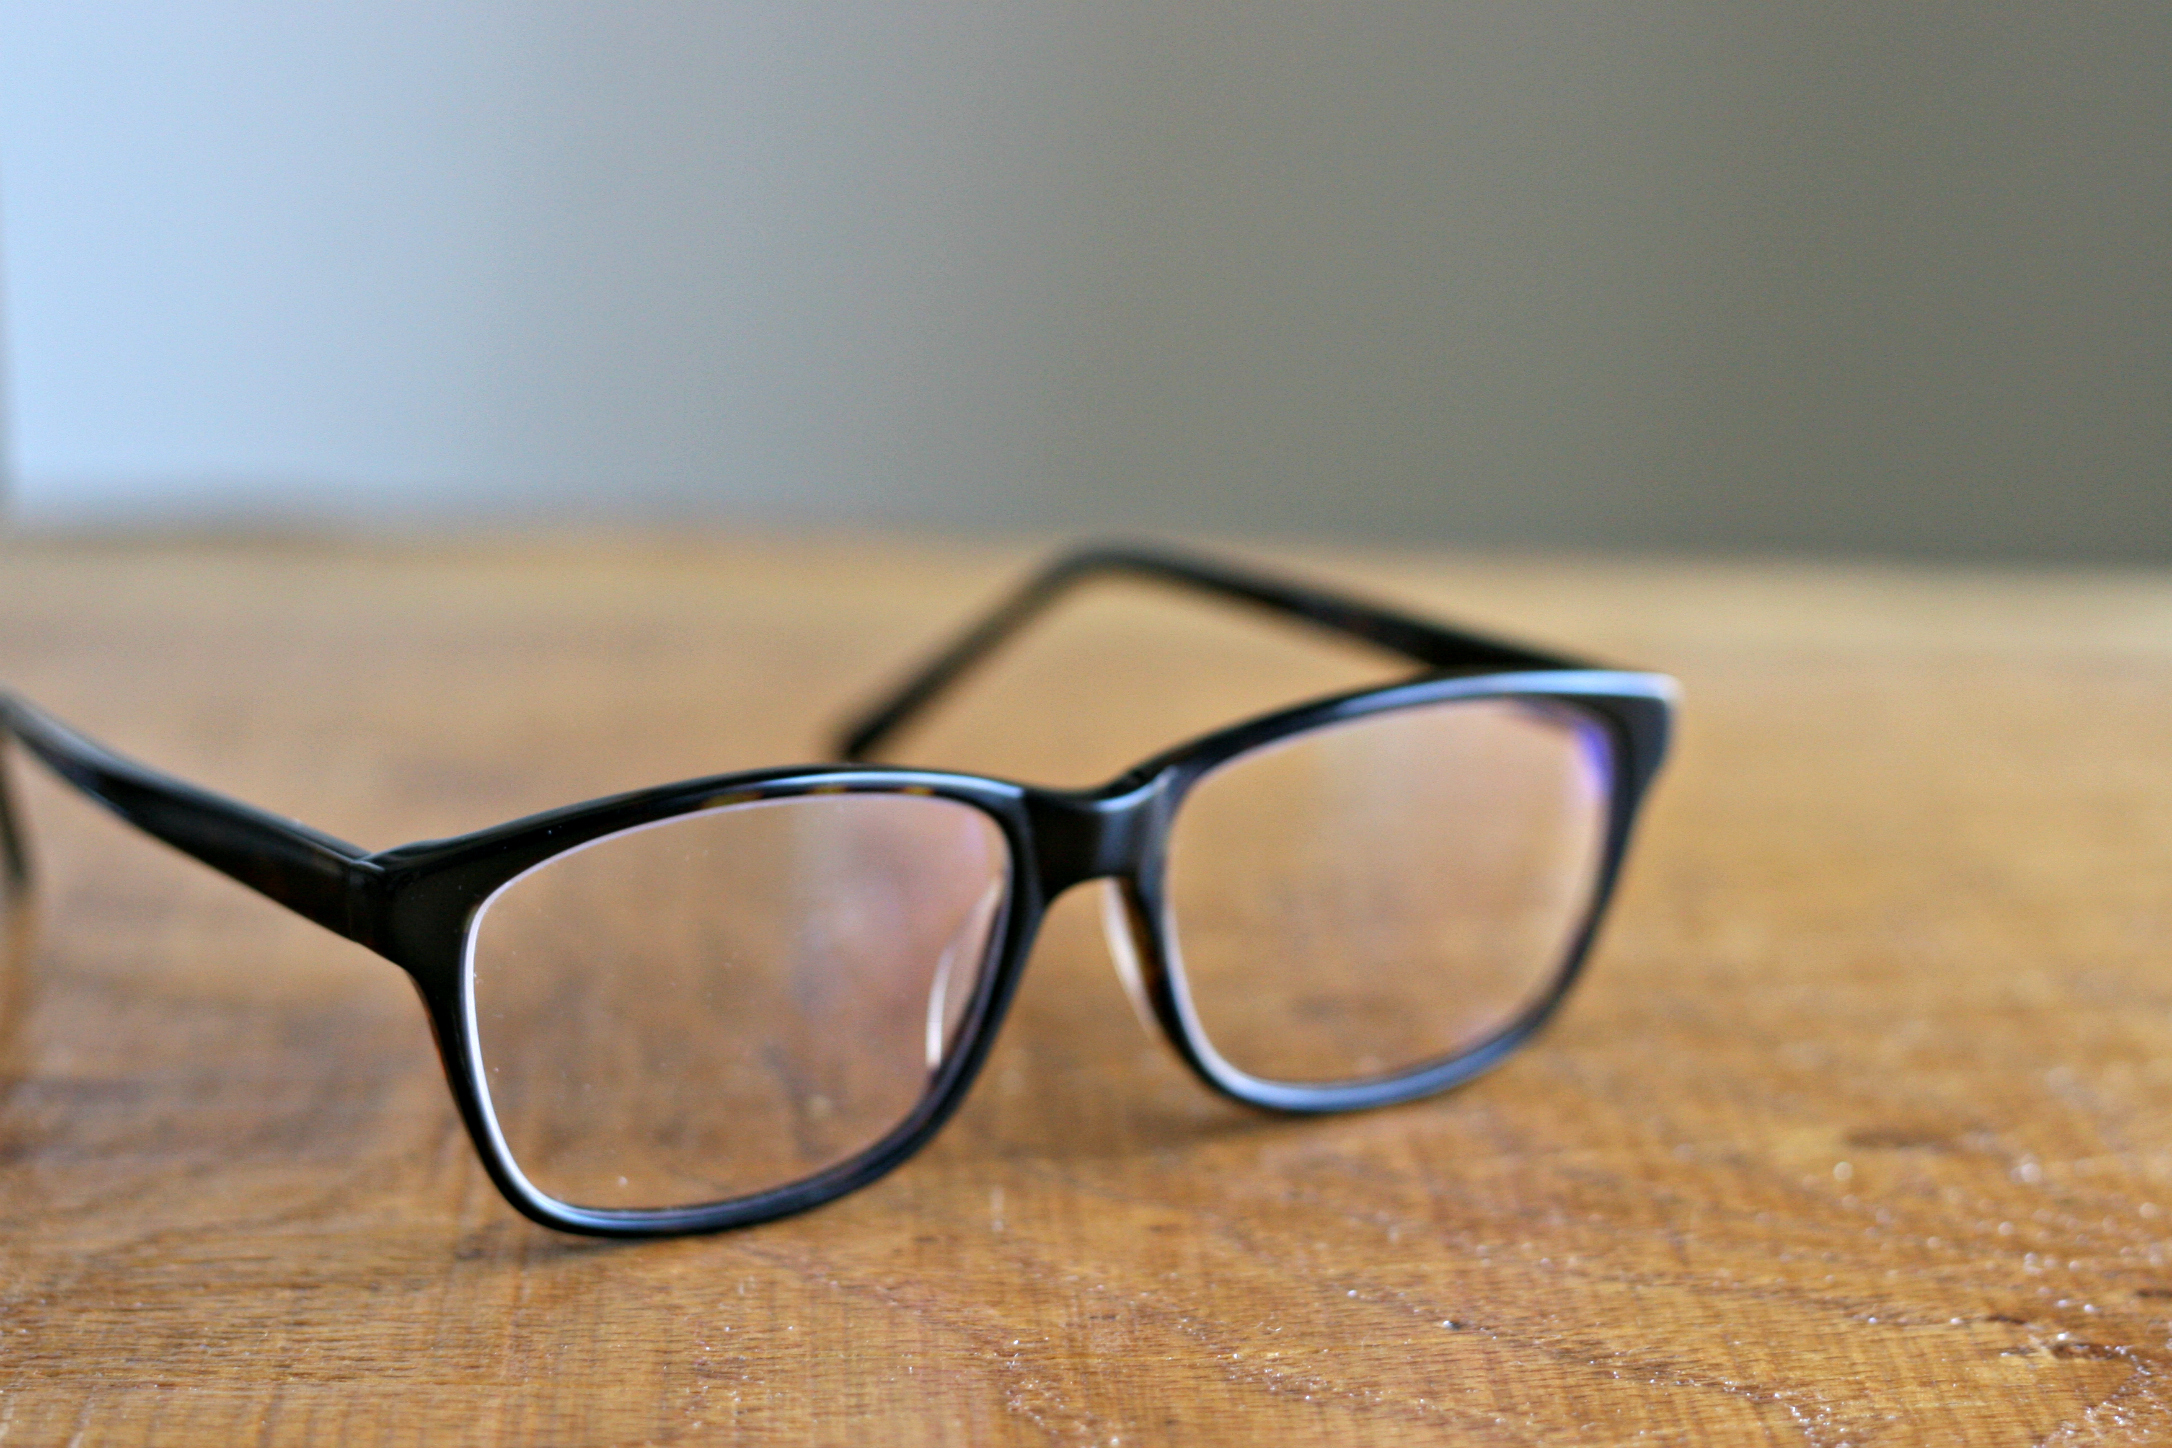 nookandsea-firmoo-glasses-review-online-retailer-tortoise-shell-unisex-full-frame-acetate-glasses-wood-table